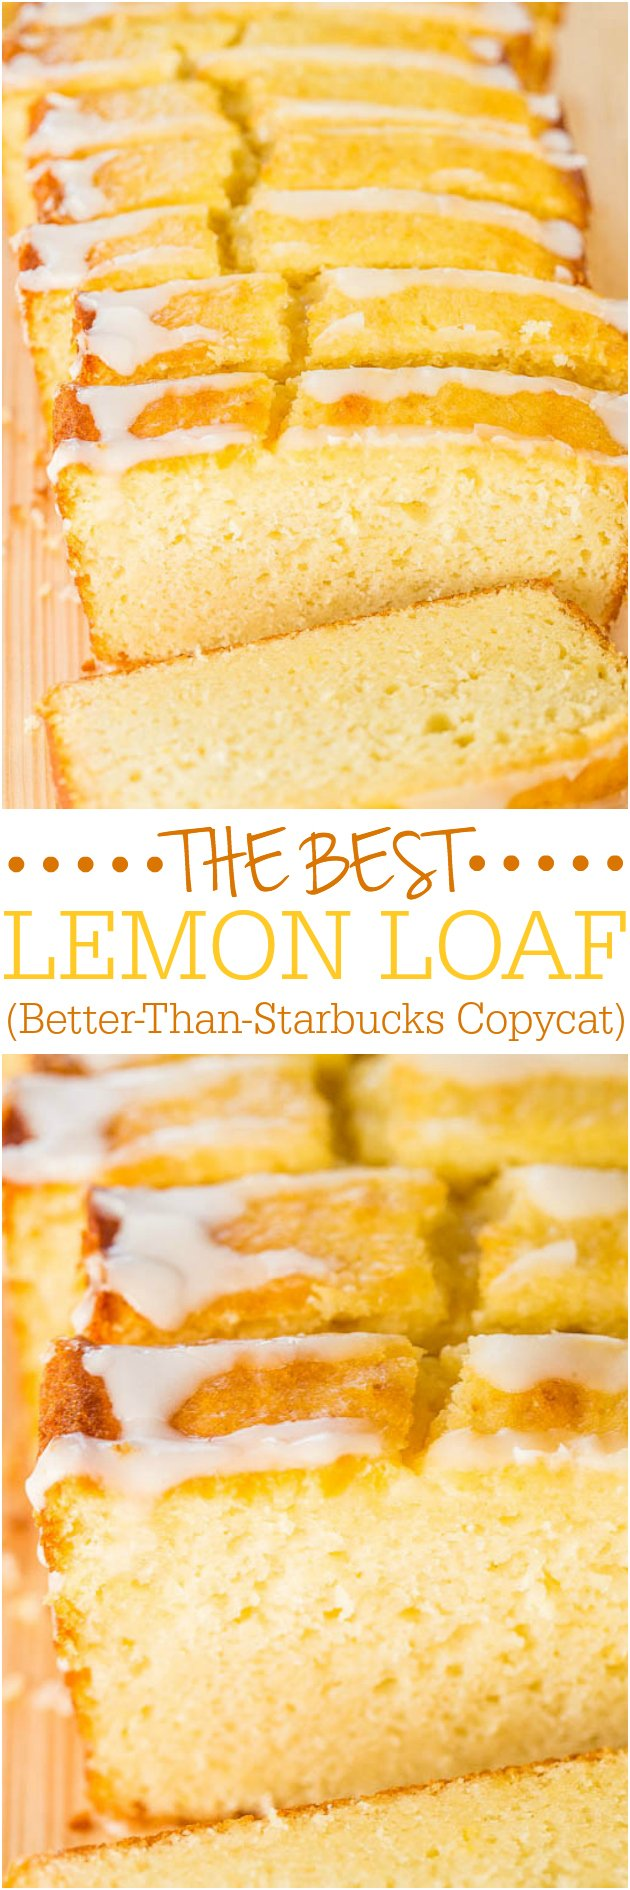 The Best Lemon Loaf (Better-Than-Starbucks Copycat) - Took years but I finally recreated it!! Easy, no mixer, no cake mix, dangerously good, and SPOT ON!!